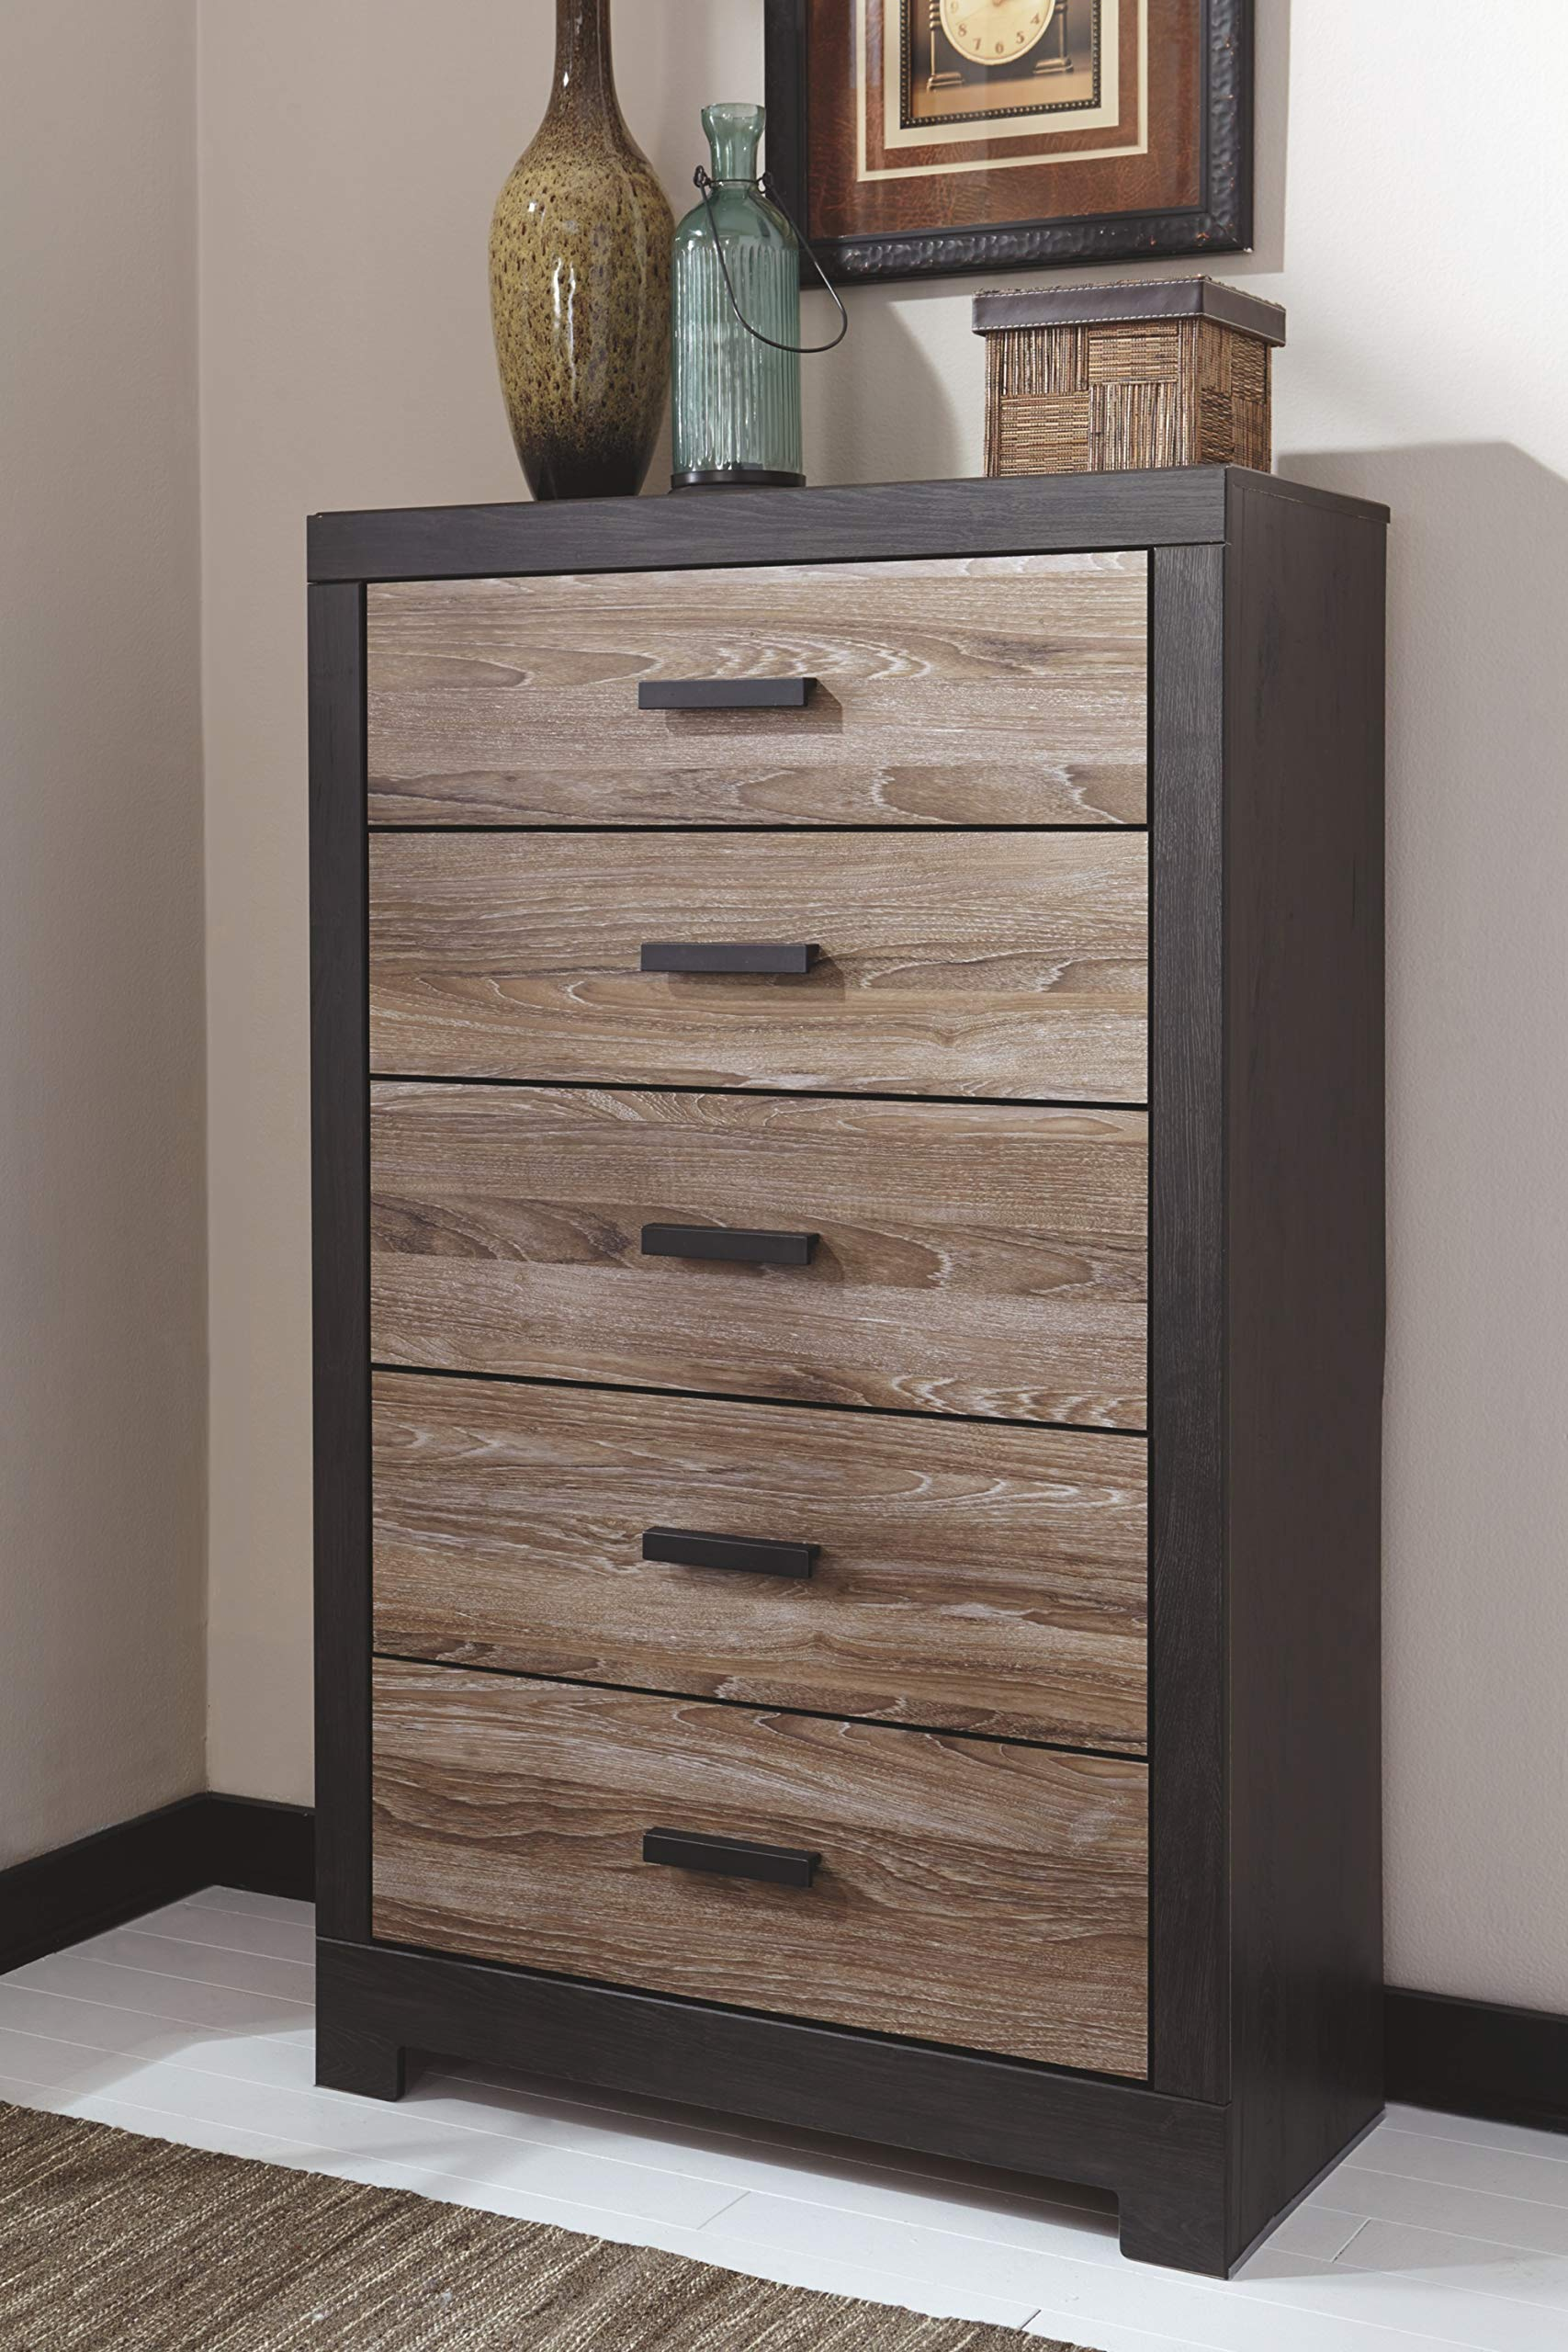 Ashley Furniture Signature Design - Harlinton Chest of Drawers - 5 Drawer Dresser - Contemporary Vintage - Warm Gray & Charcoal by Signature Design by Ashley (Image #2)